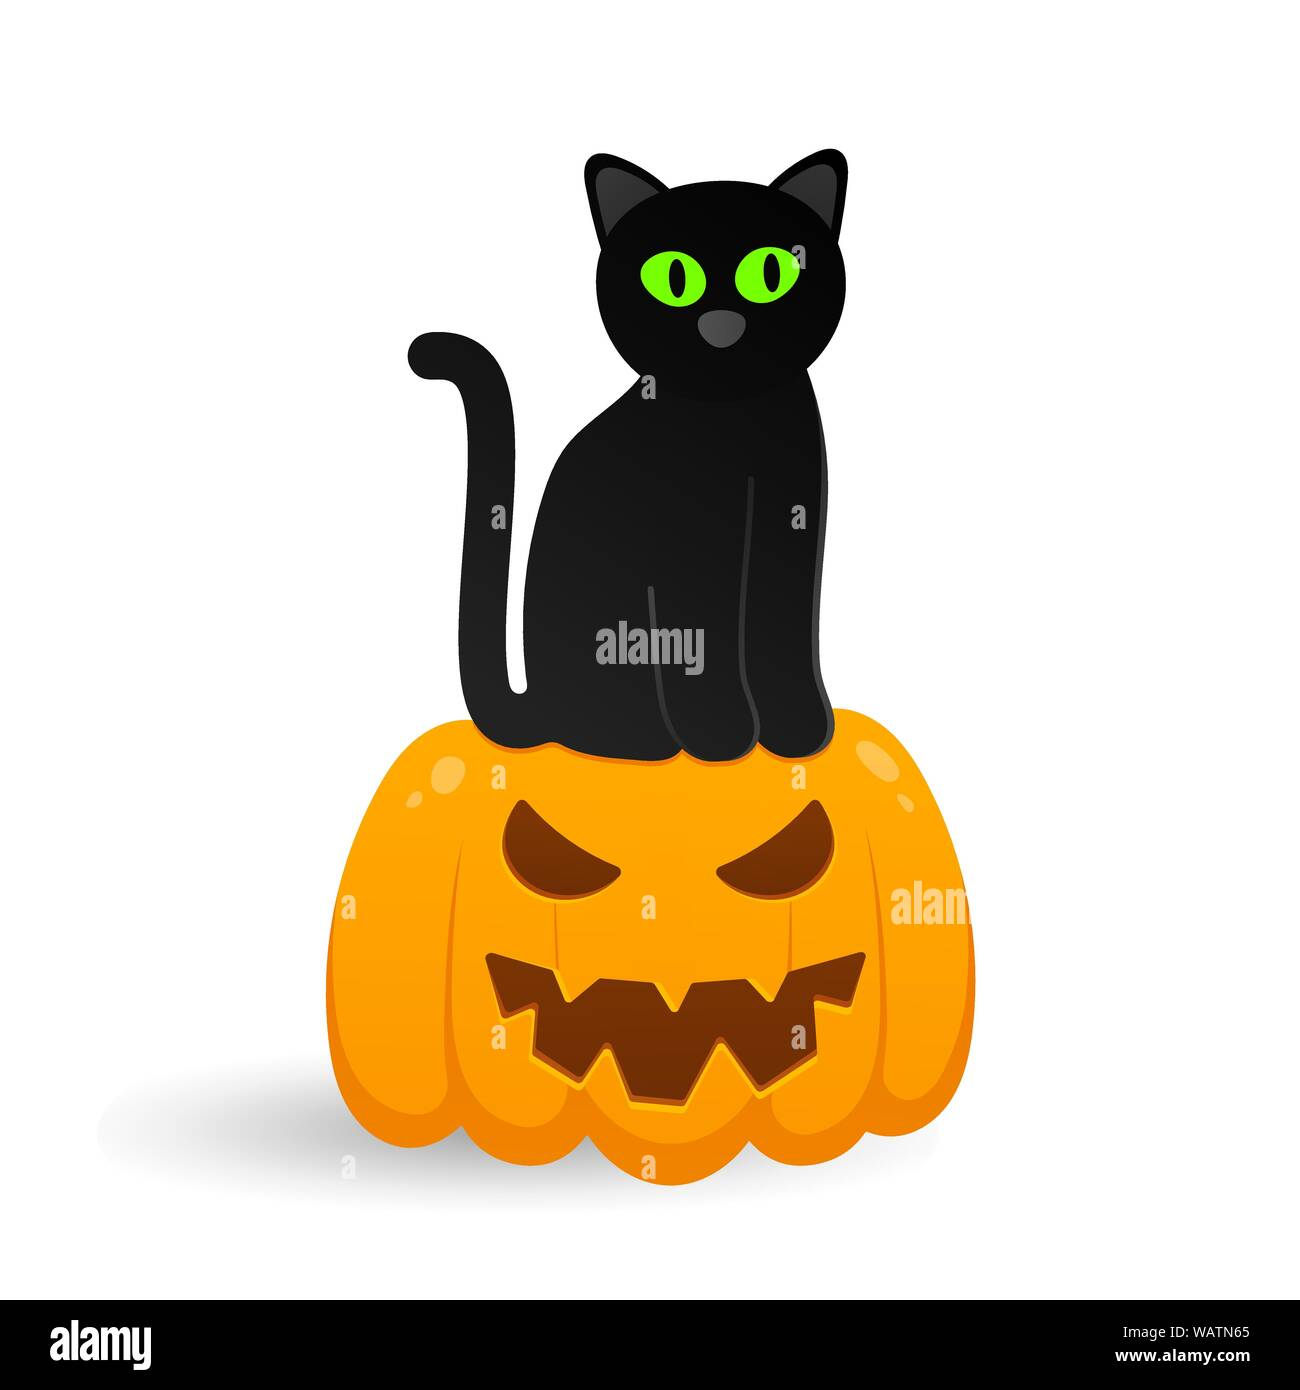 Cute Black With Cat Sitting On Halloween Pumpkin With Carved Scary